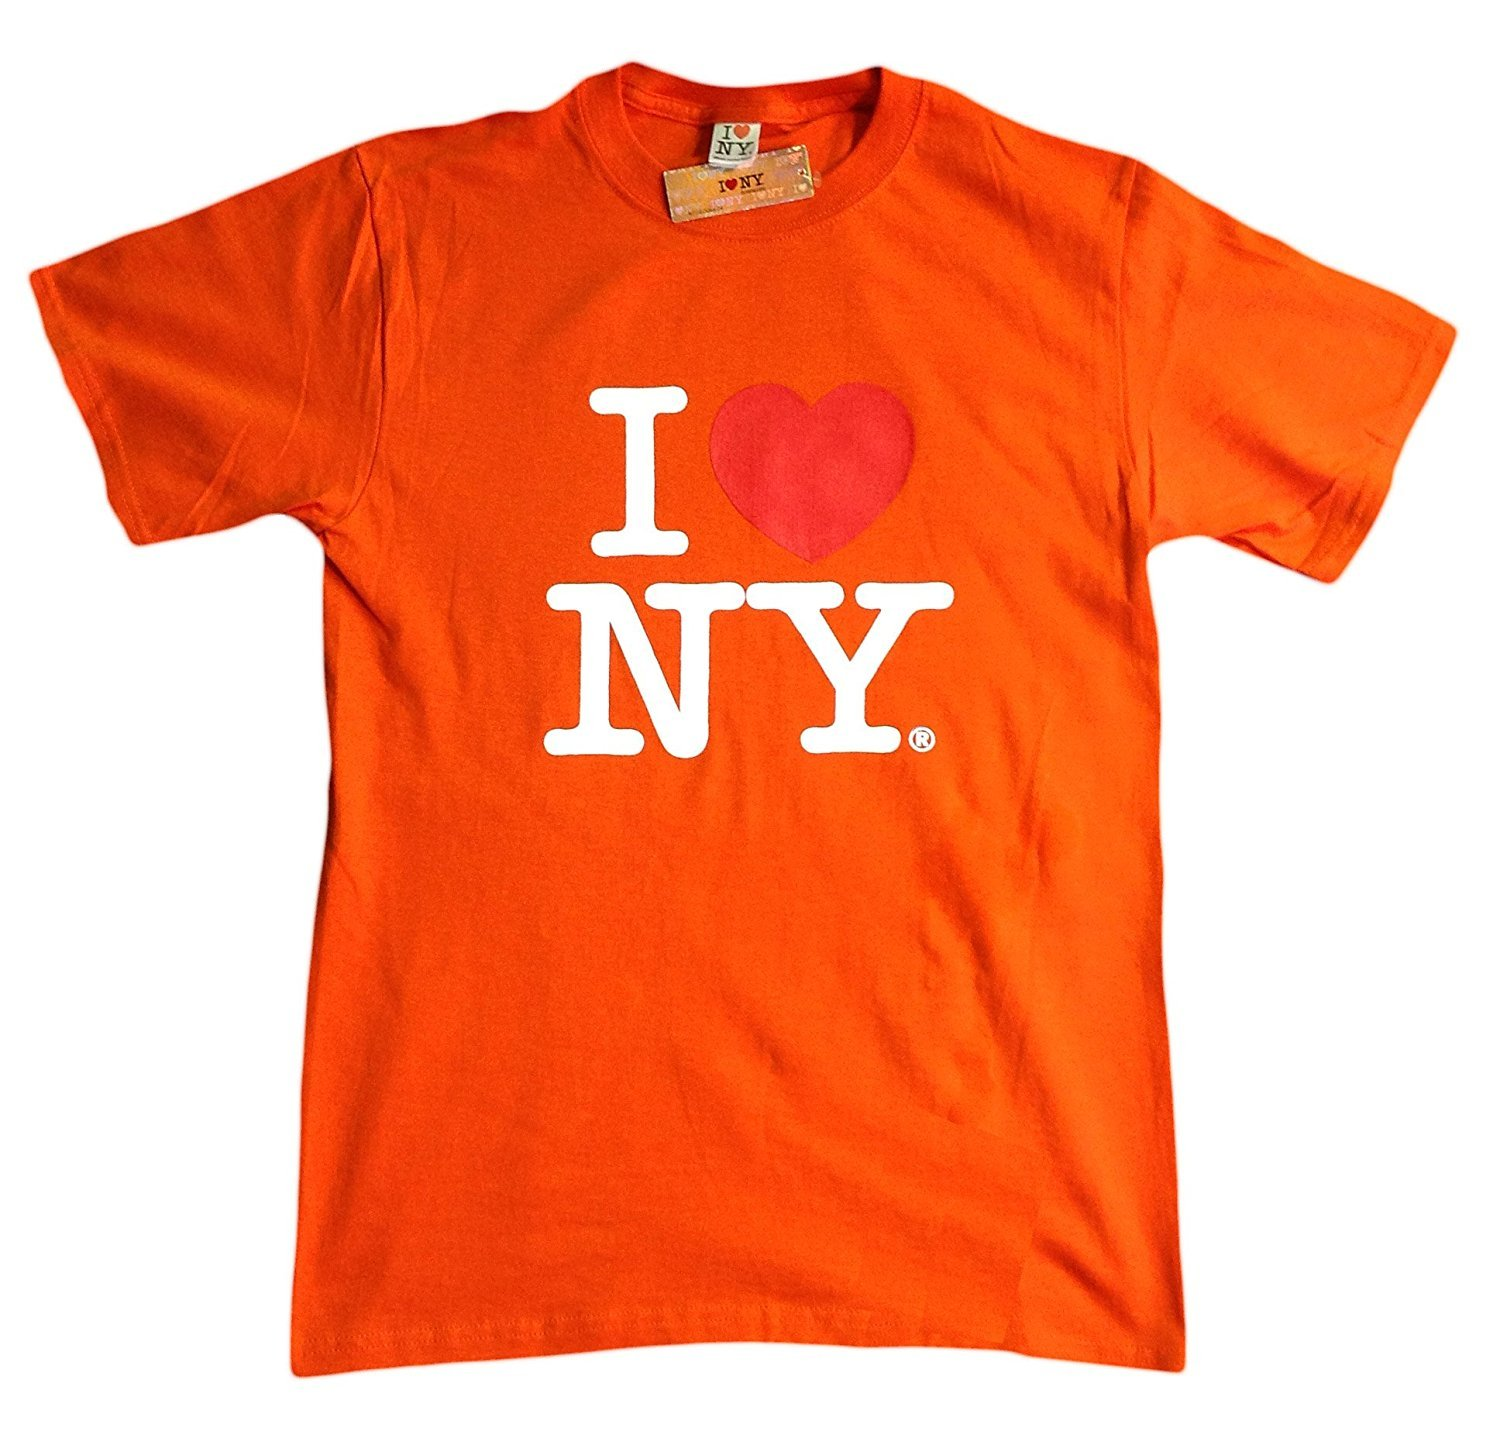 I Love NY New York Short Sleeve Screen Print Heart T-Shirt Orange  cddcb12174c